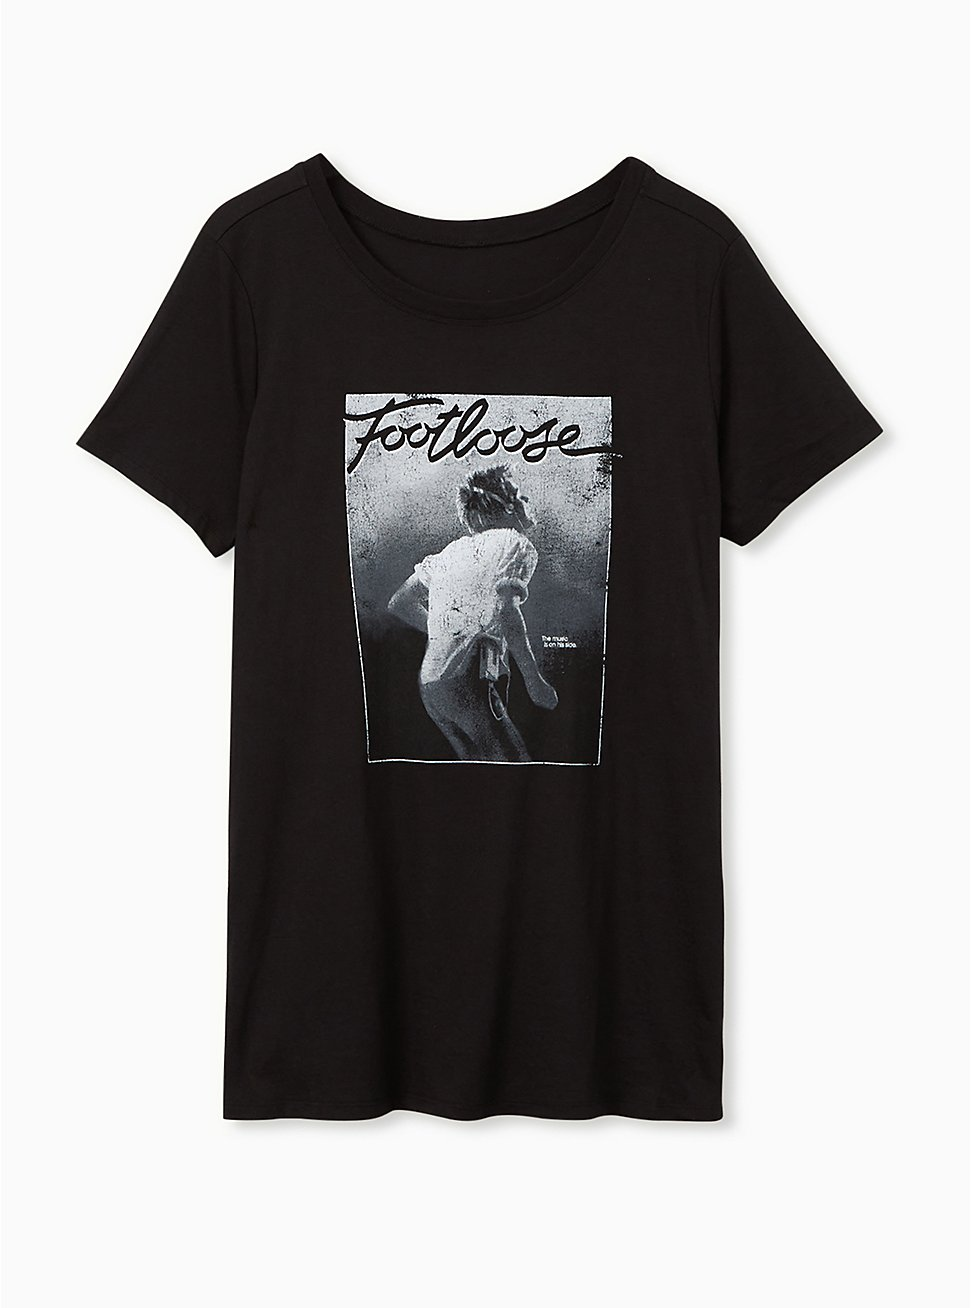 Plus Size Footloose Classic Fit Crew Tee - Black, DEEP BLACK, hi-res